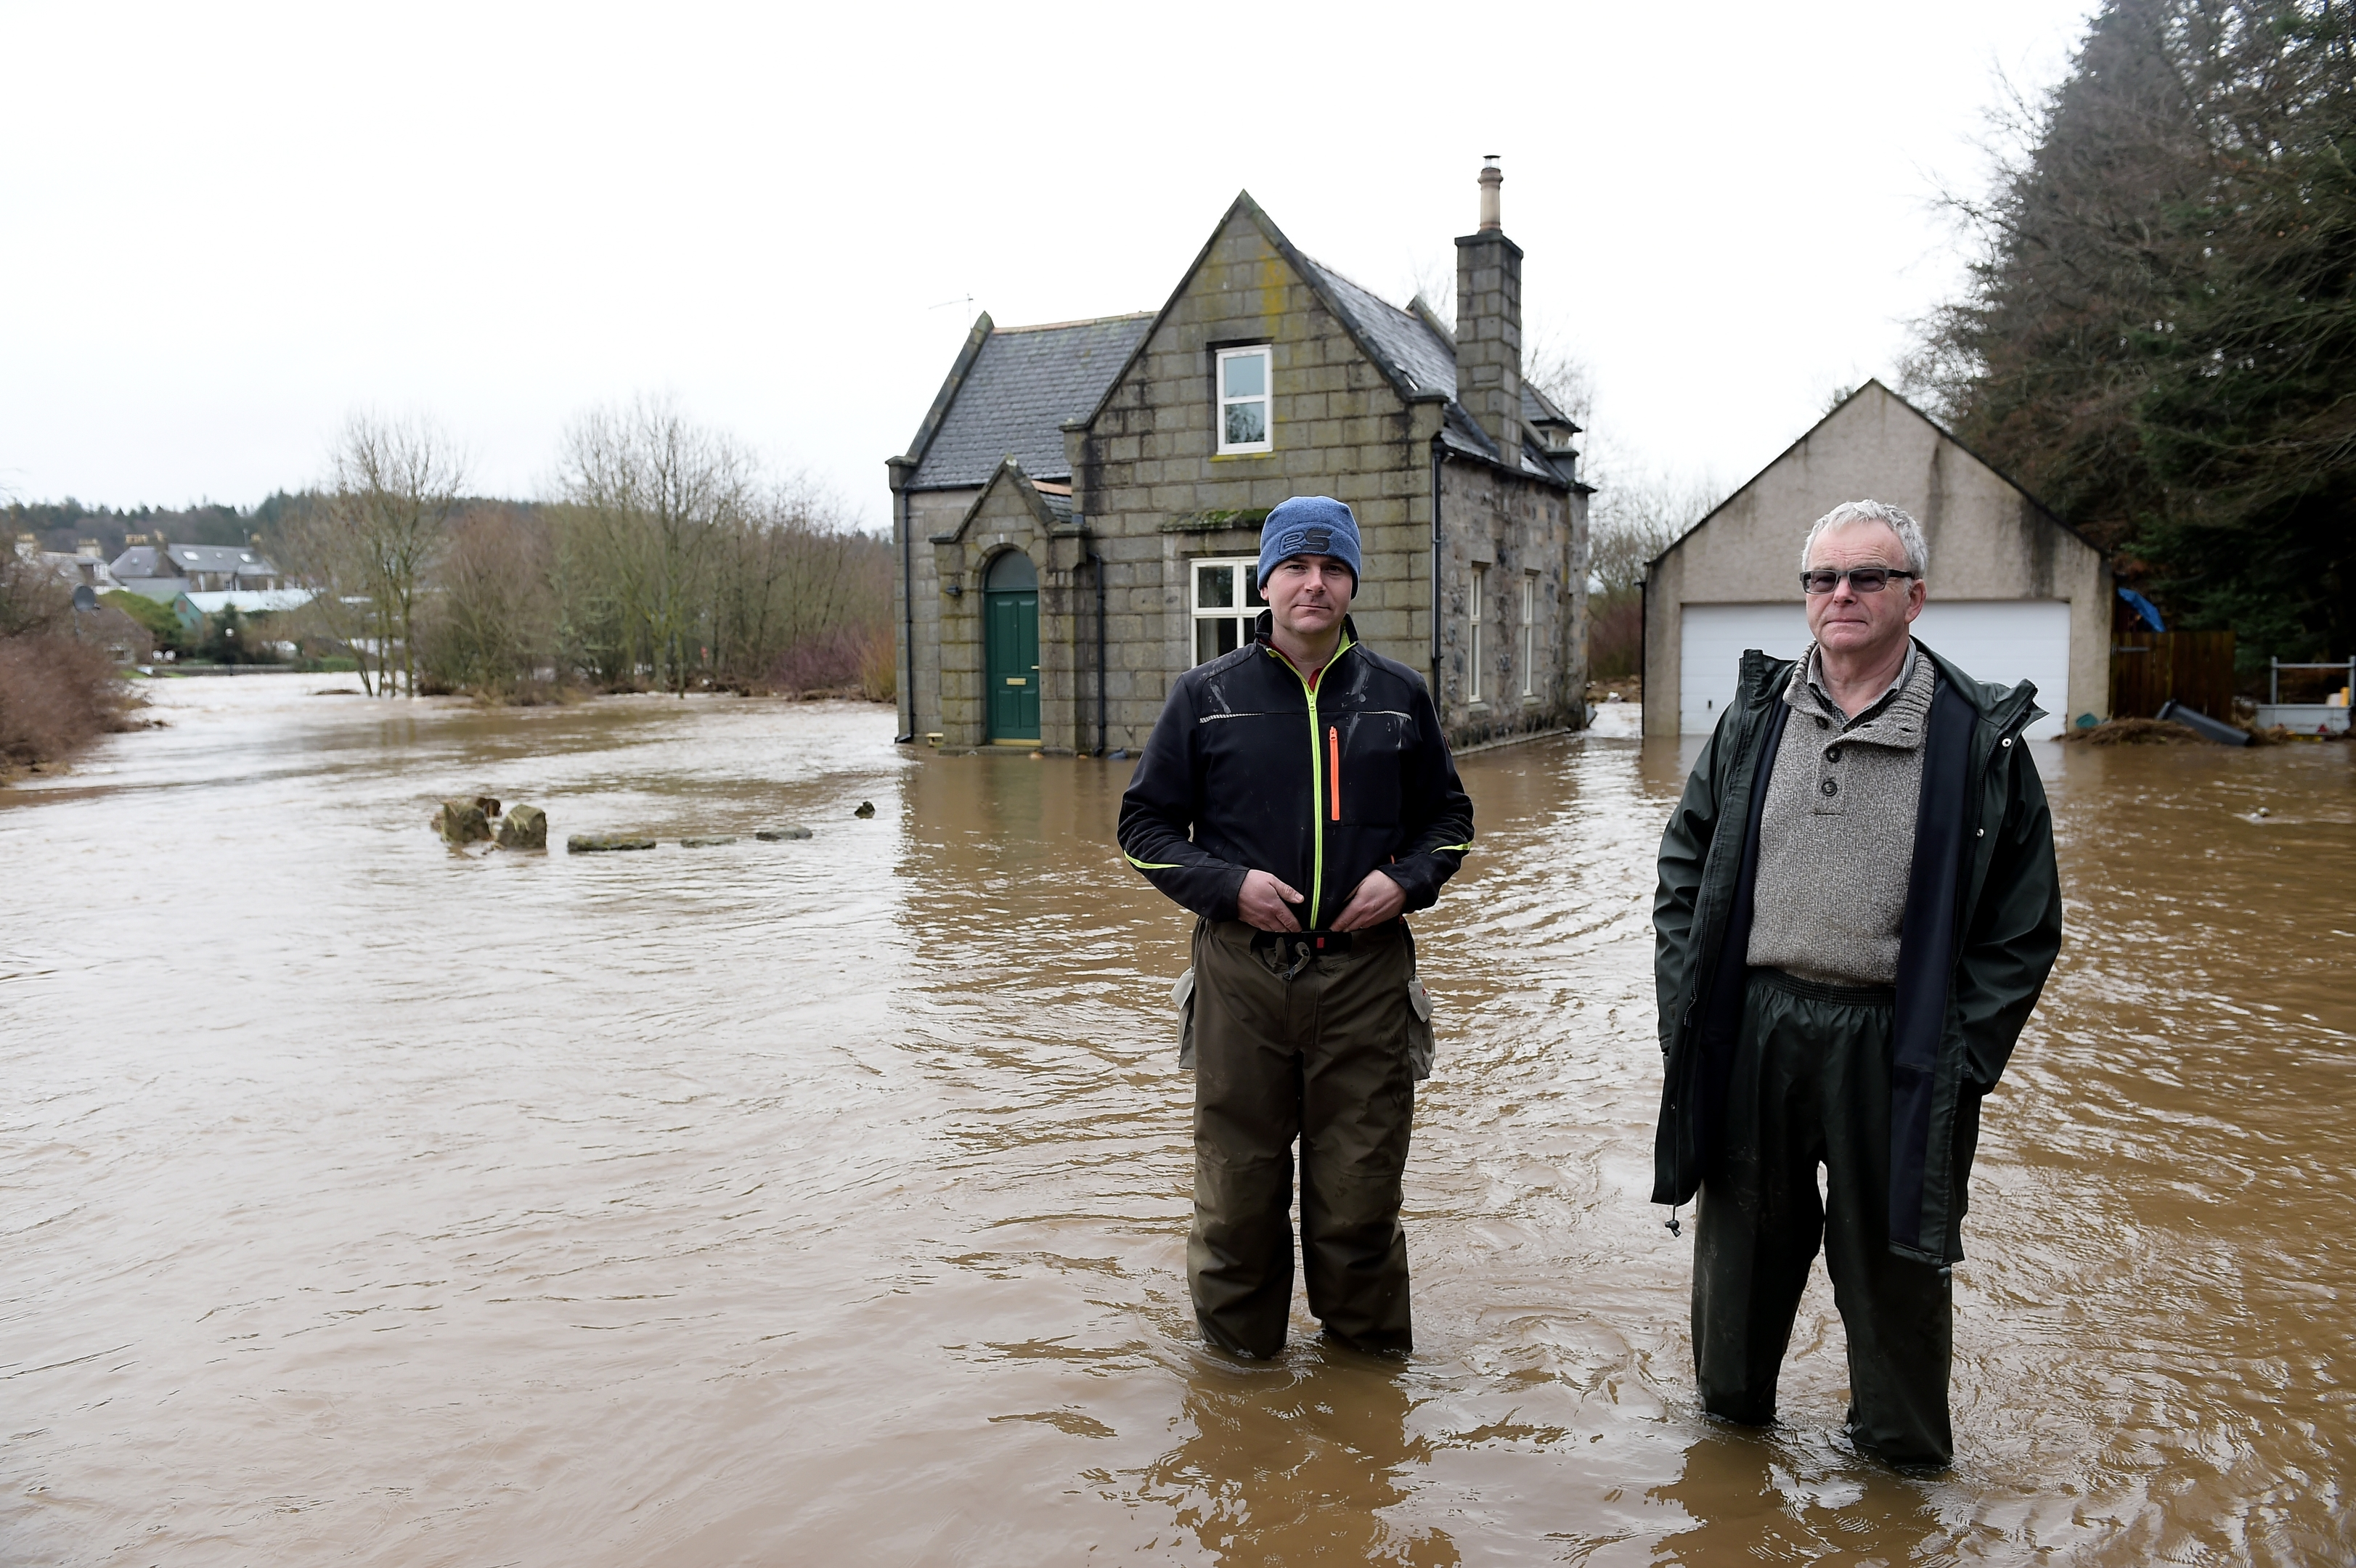 The River Ythan has burst it's banks at Ellon. The home of George Thomson on the banks of the Ythan near the old bridge which was flooded last night. George (right) is pictured with his son Craig Thomson.